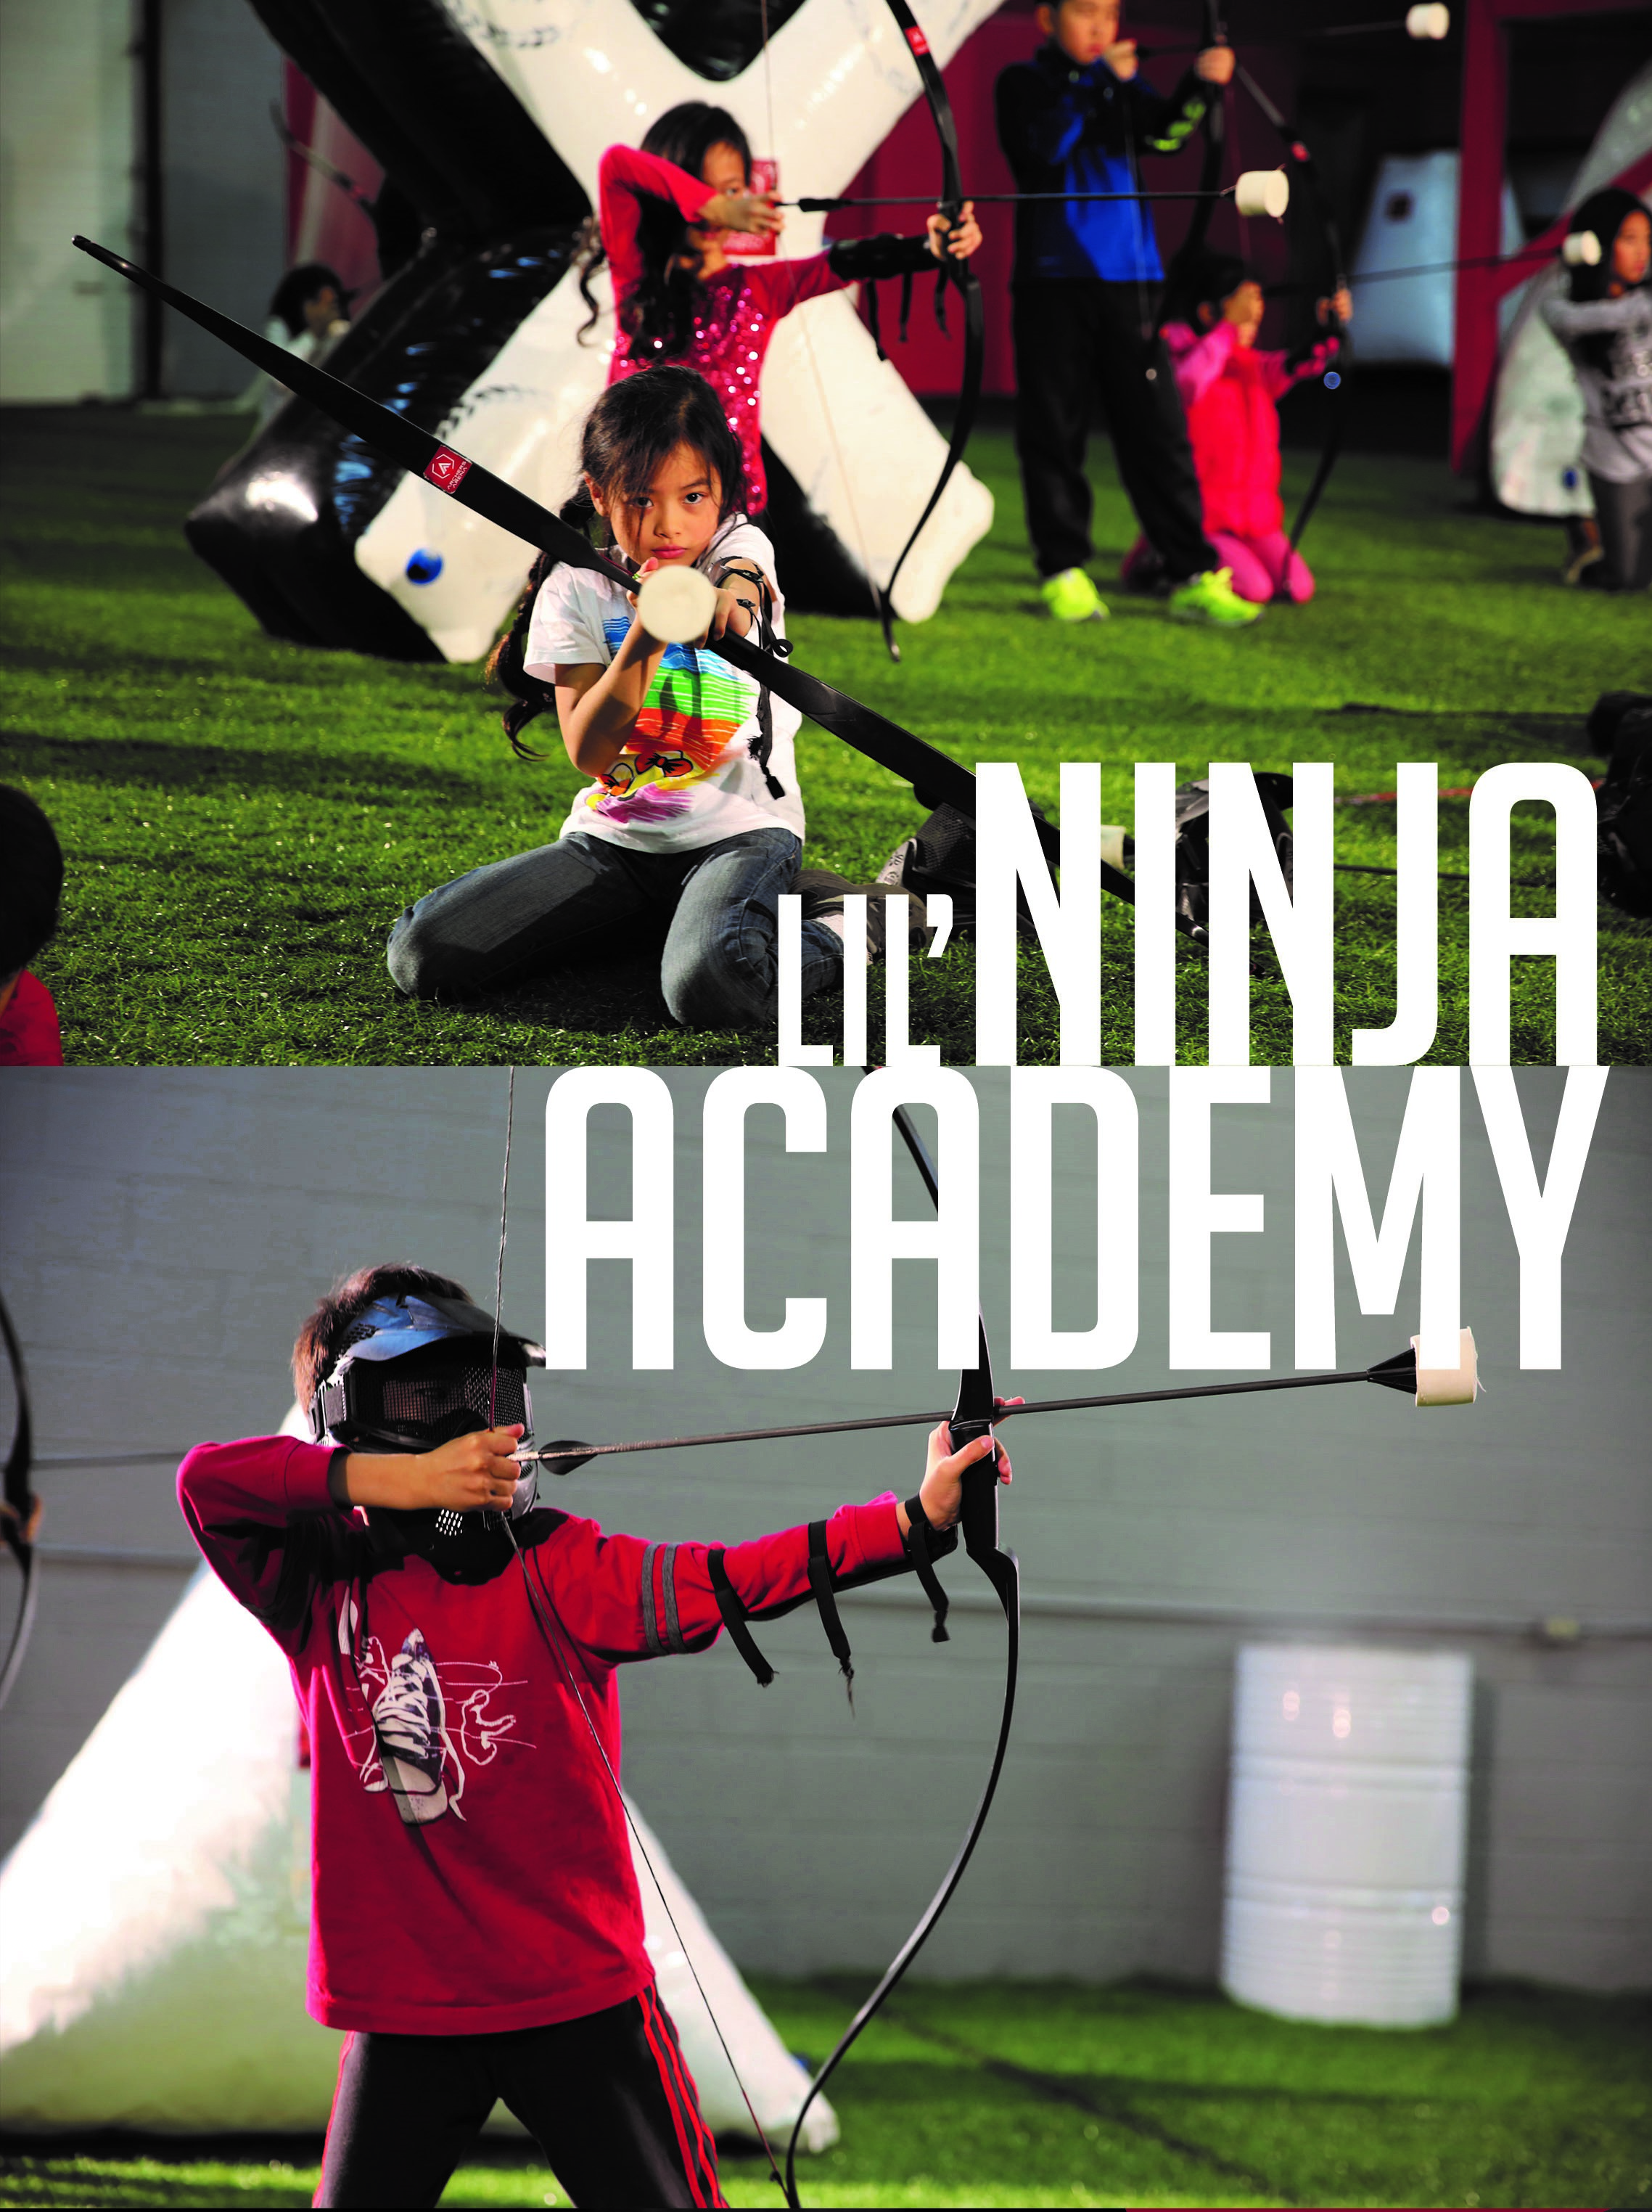 archery tag ninja academy kids camp